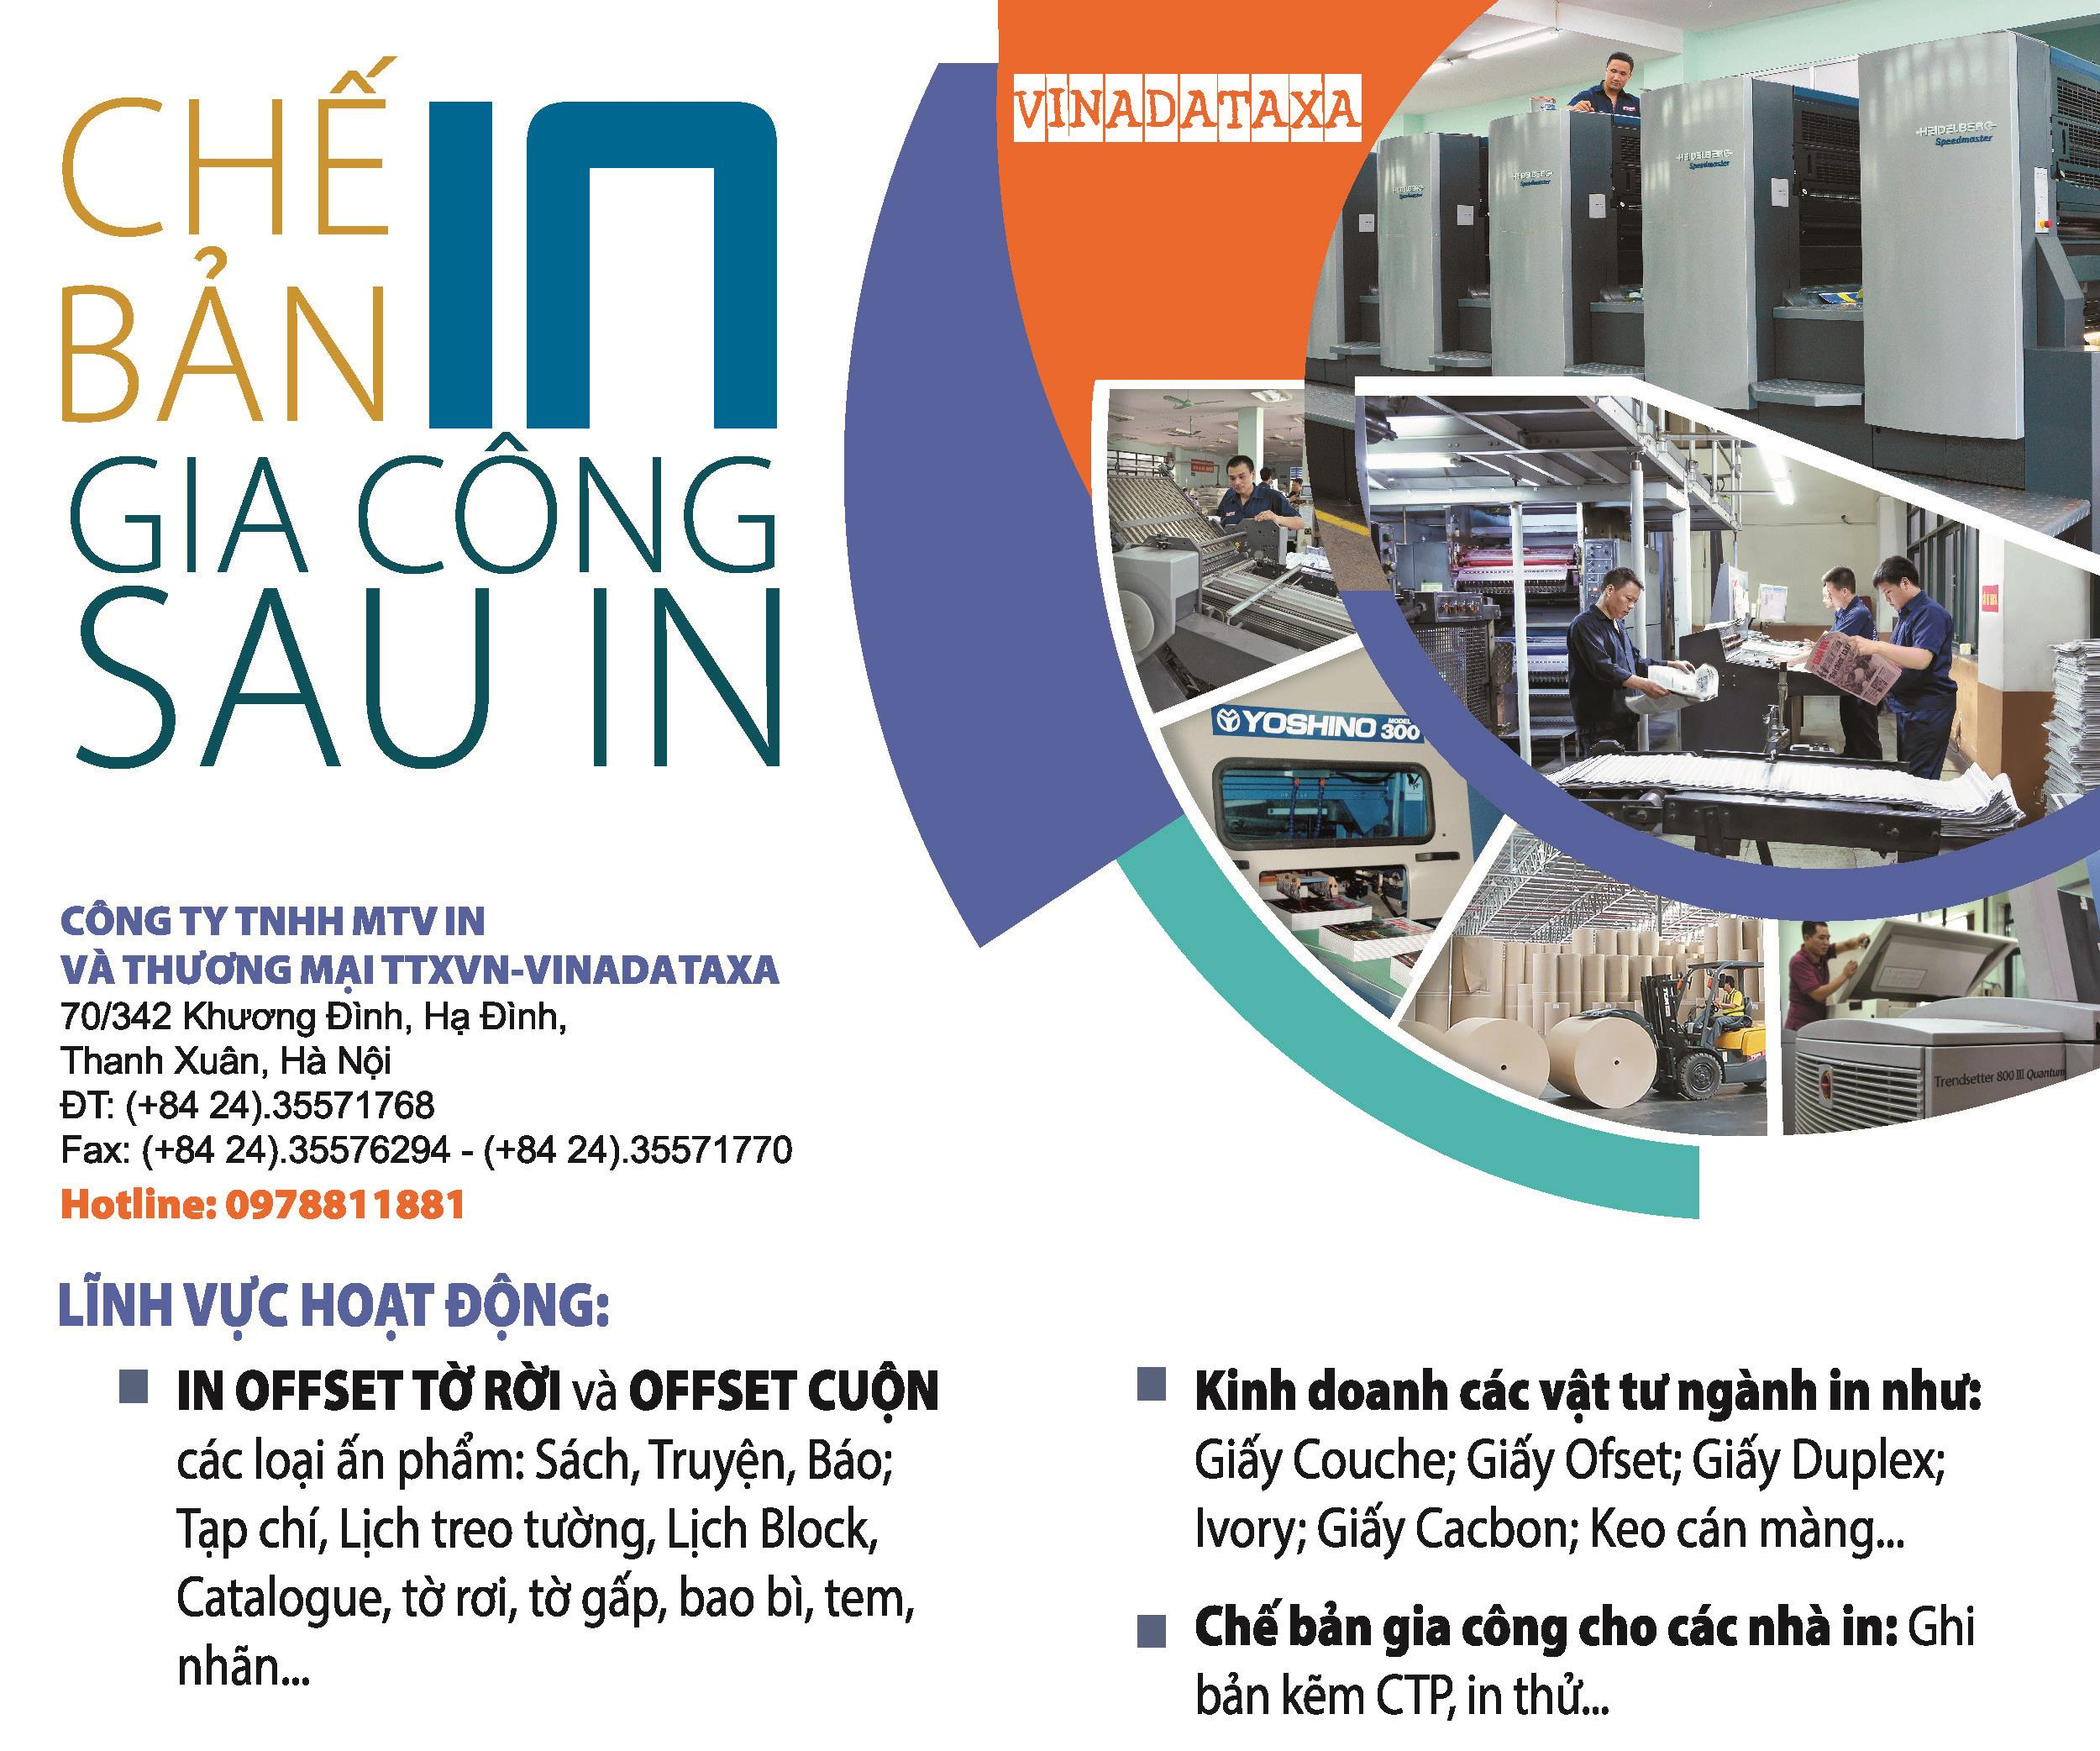 Web: Home Right 3: Chế bản in